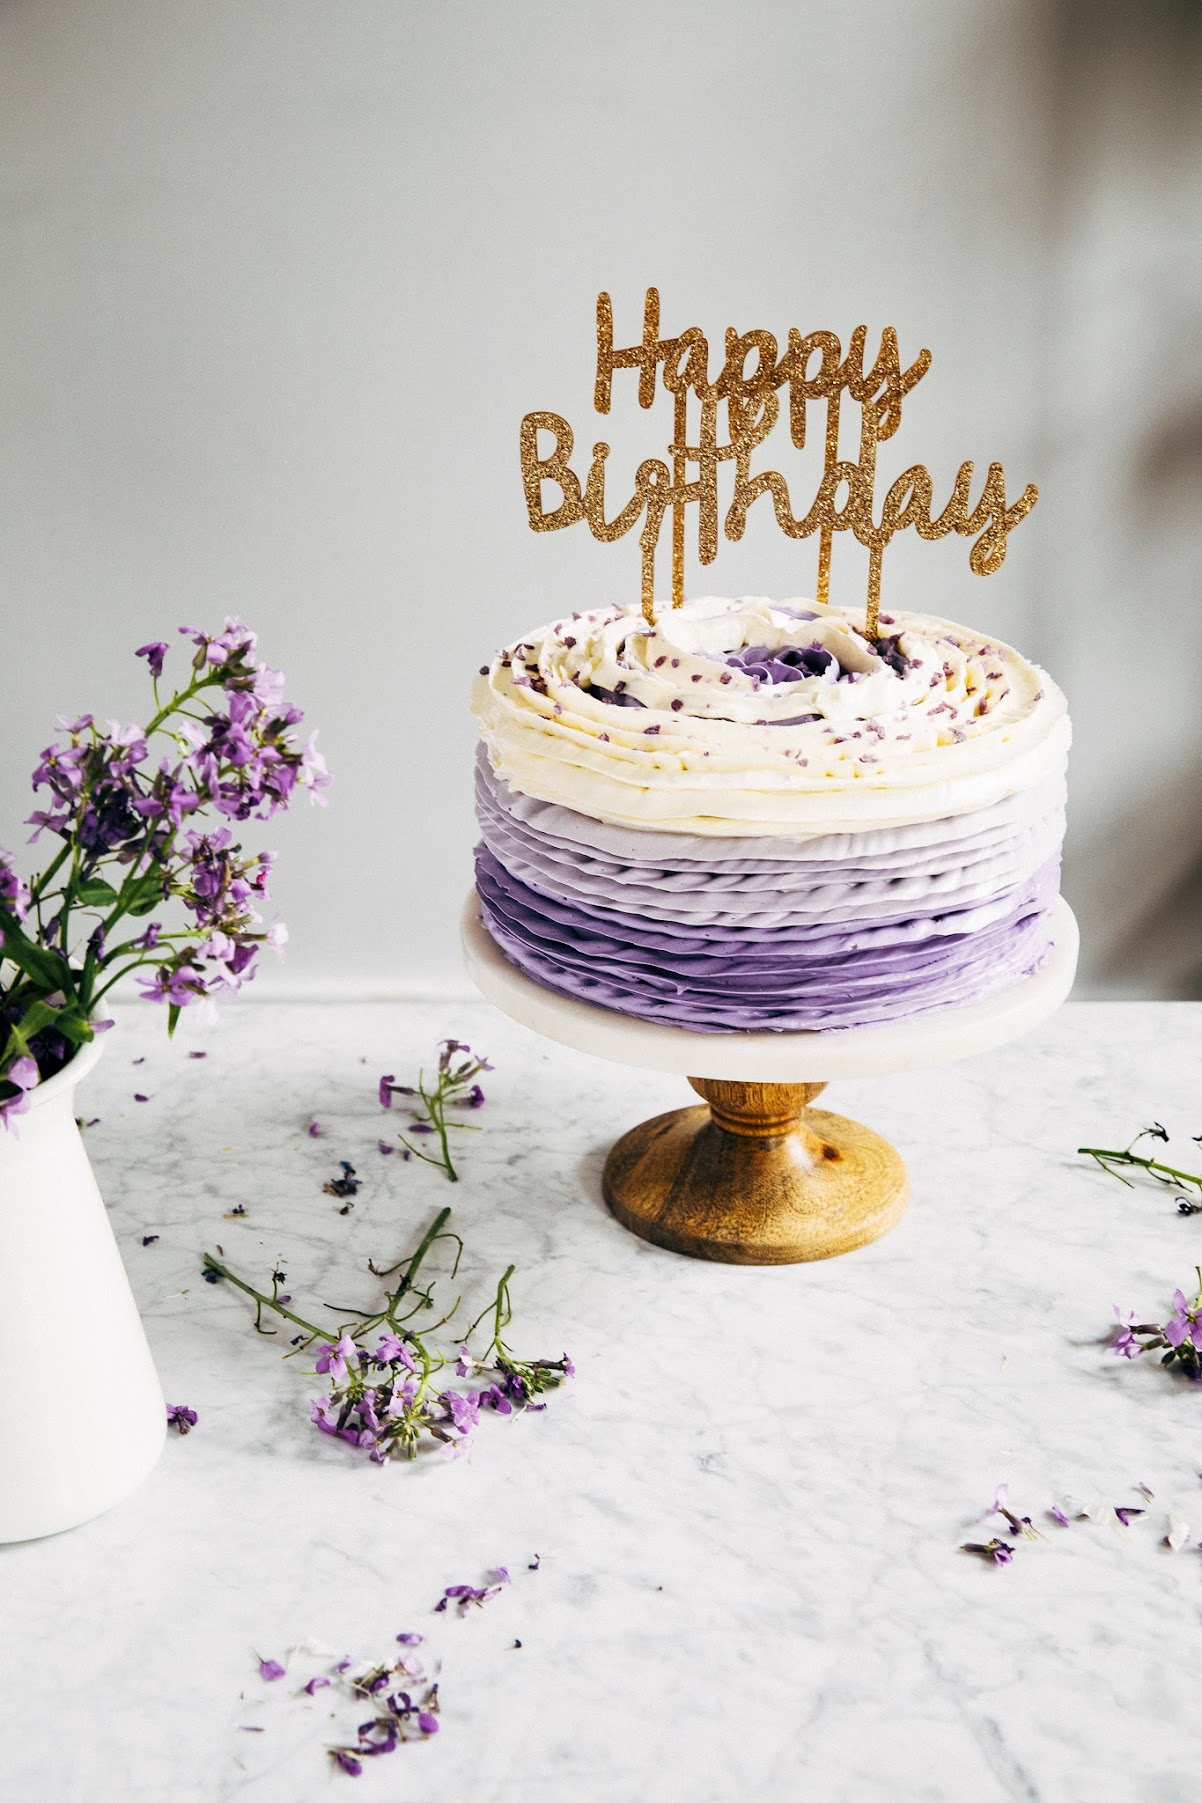 30th Birthday Chocolate Cake With Lavender Ruffle Frosting